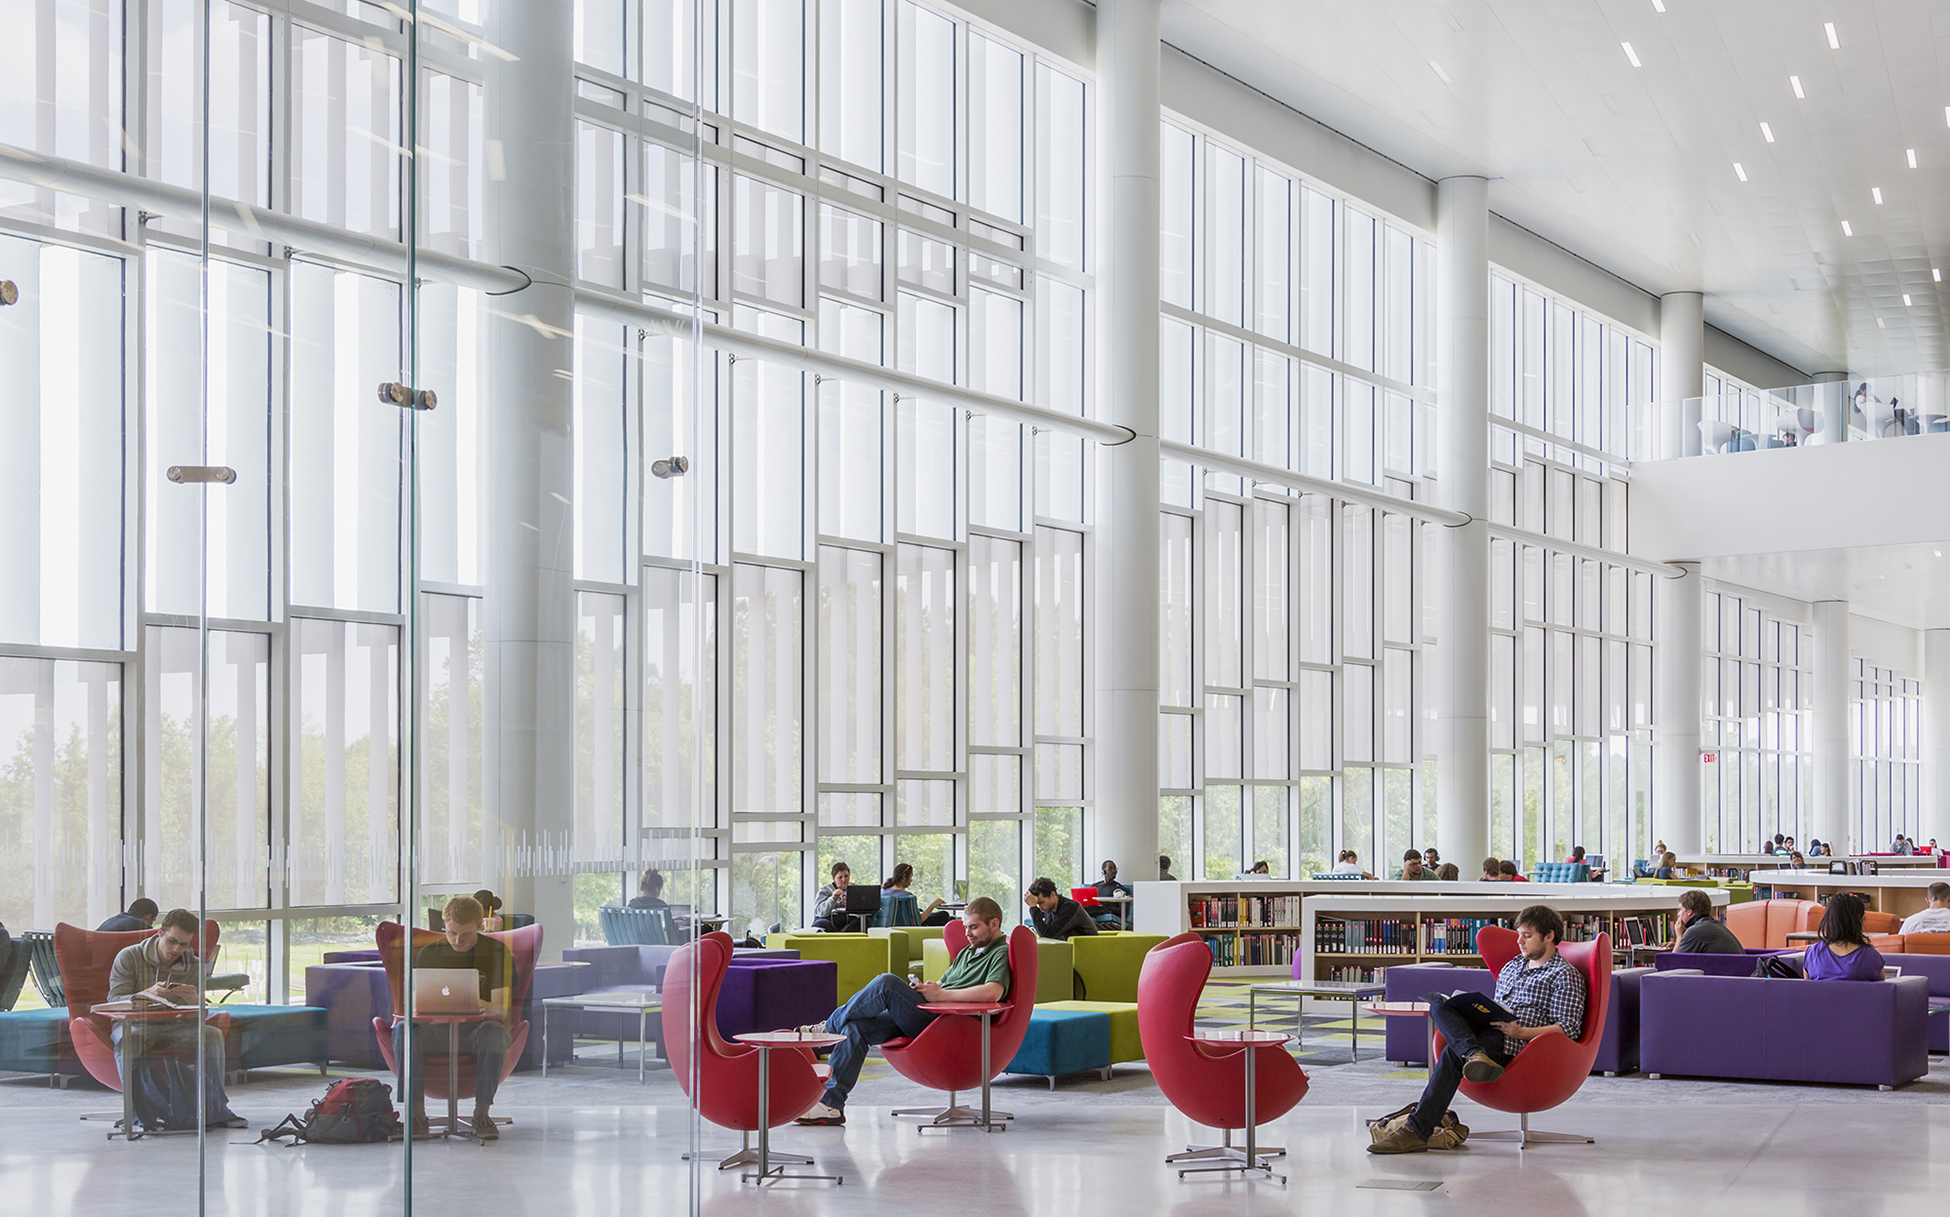 A huge open lobby, glass walled on one side, with colorful chairs and tables